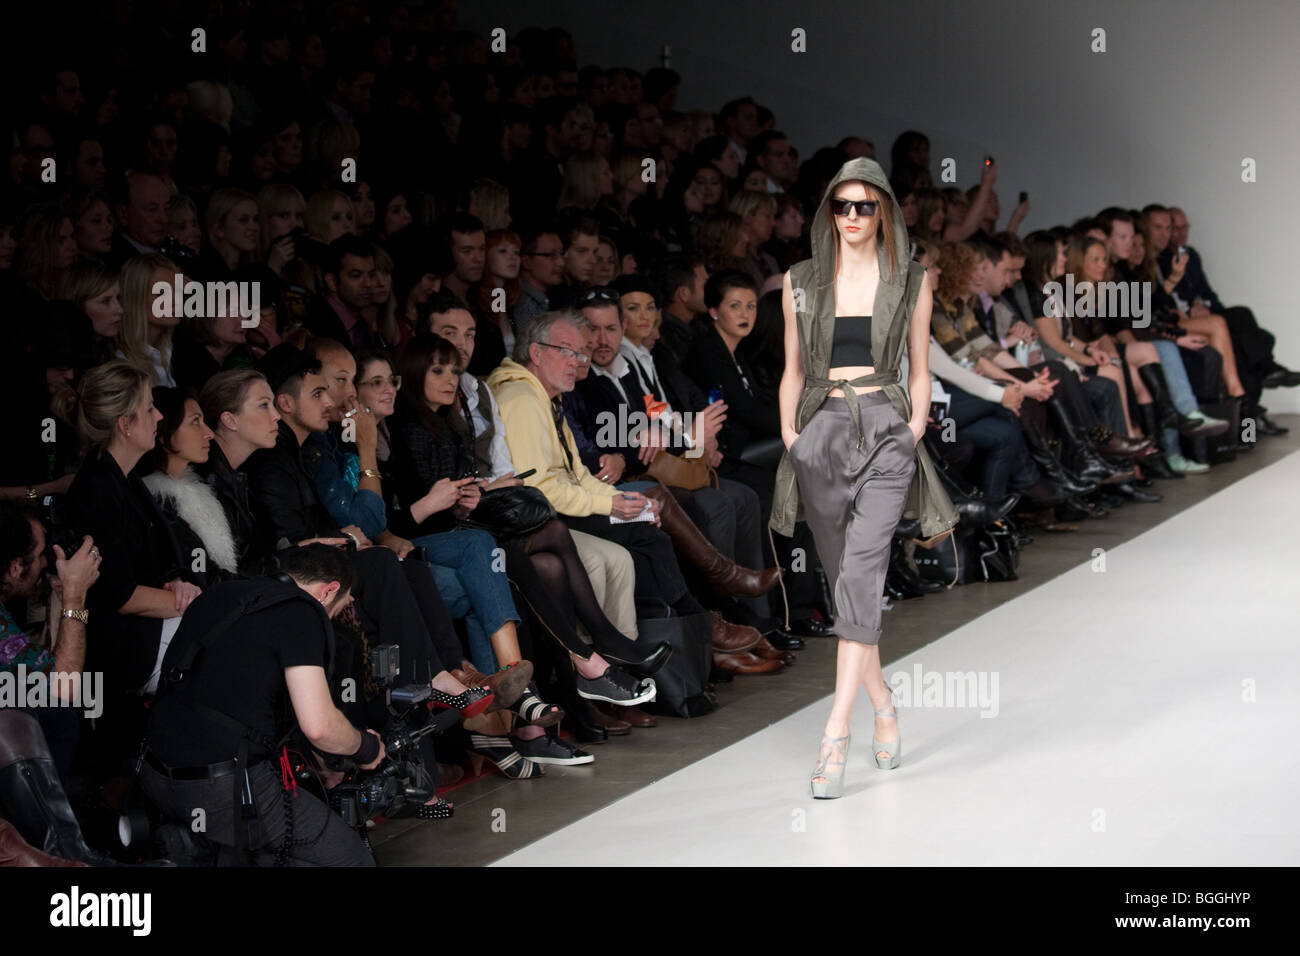 Show Fashion runway audience 2019